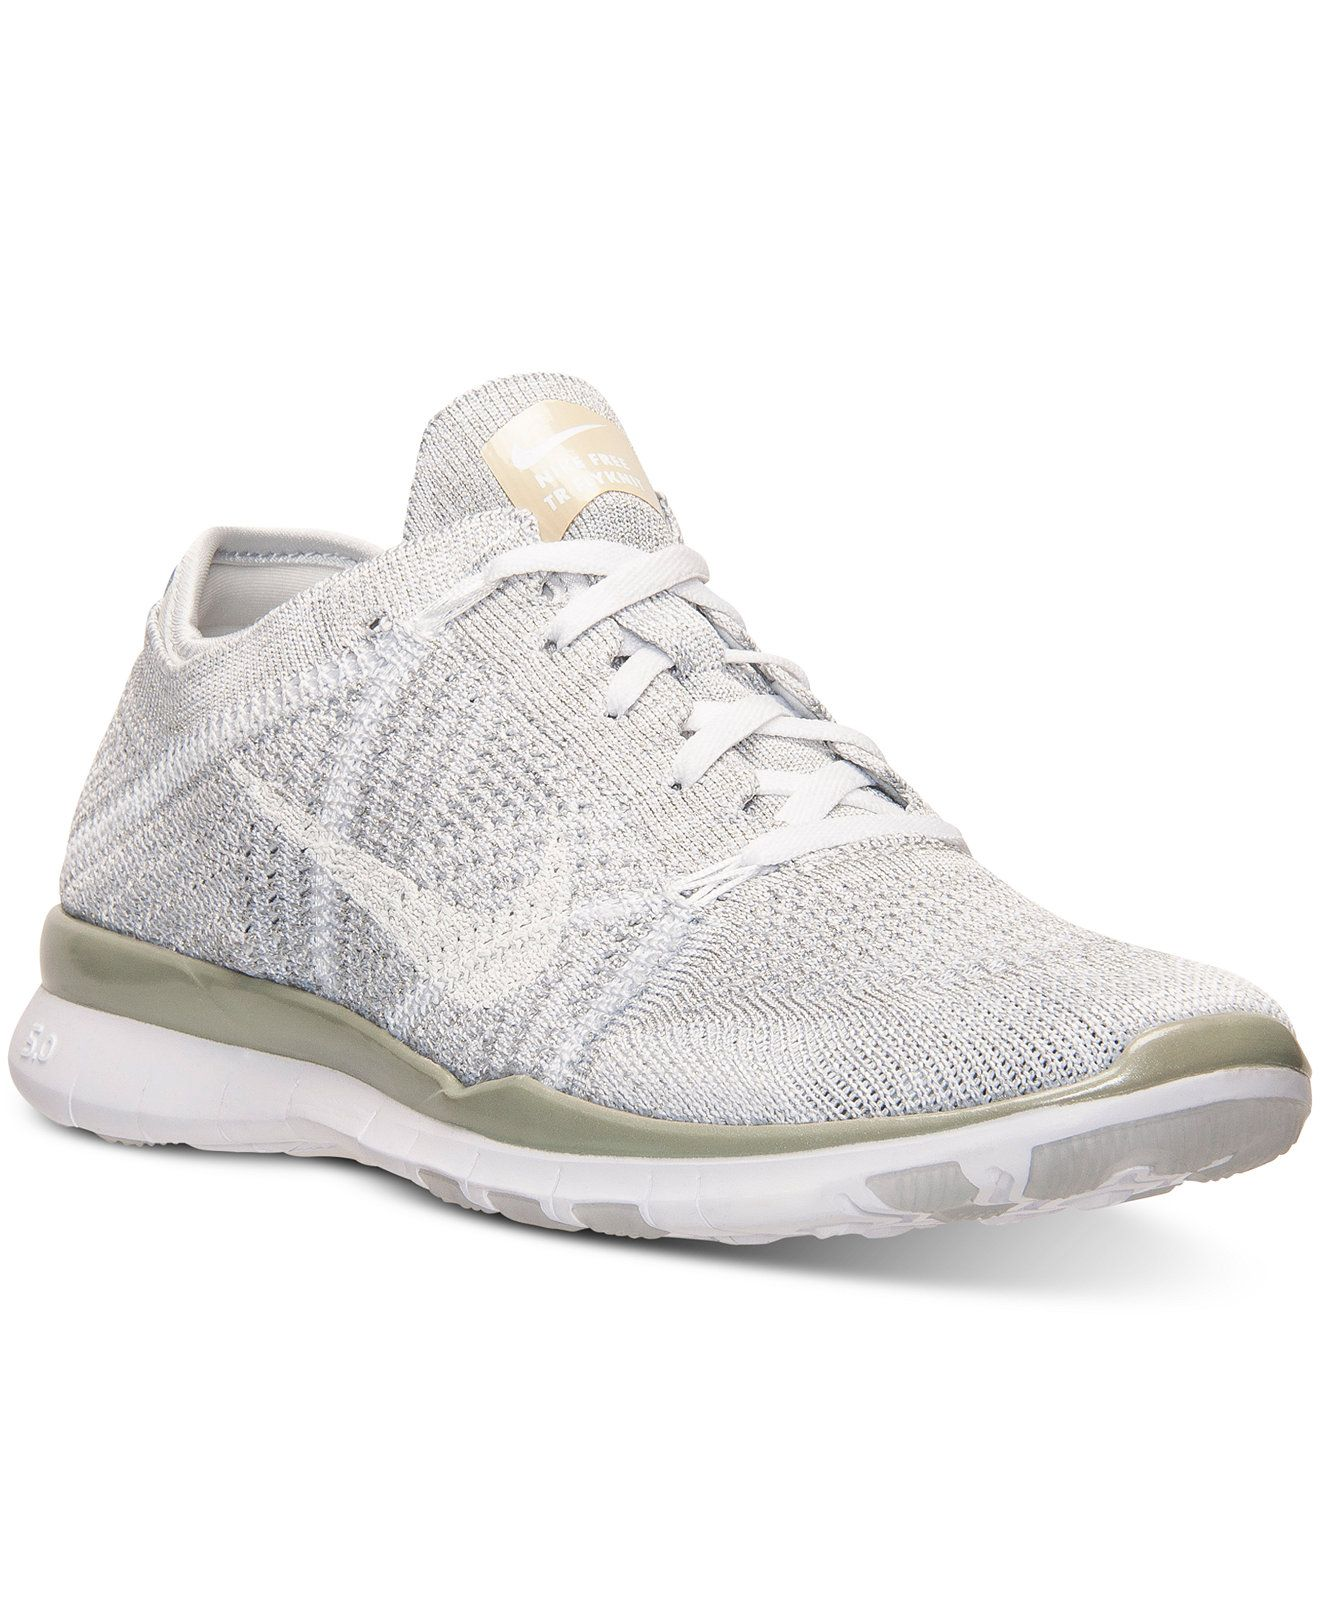 nike womens free 5.0 tr flyknit metallic training sneakers